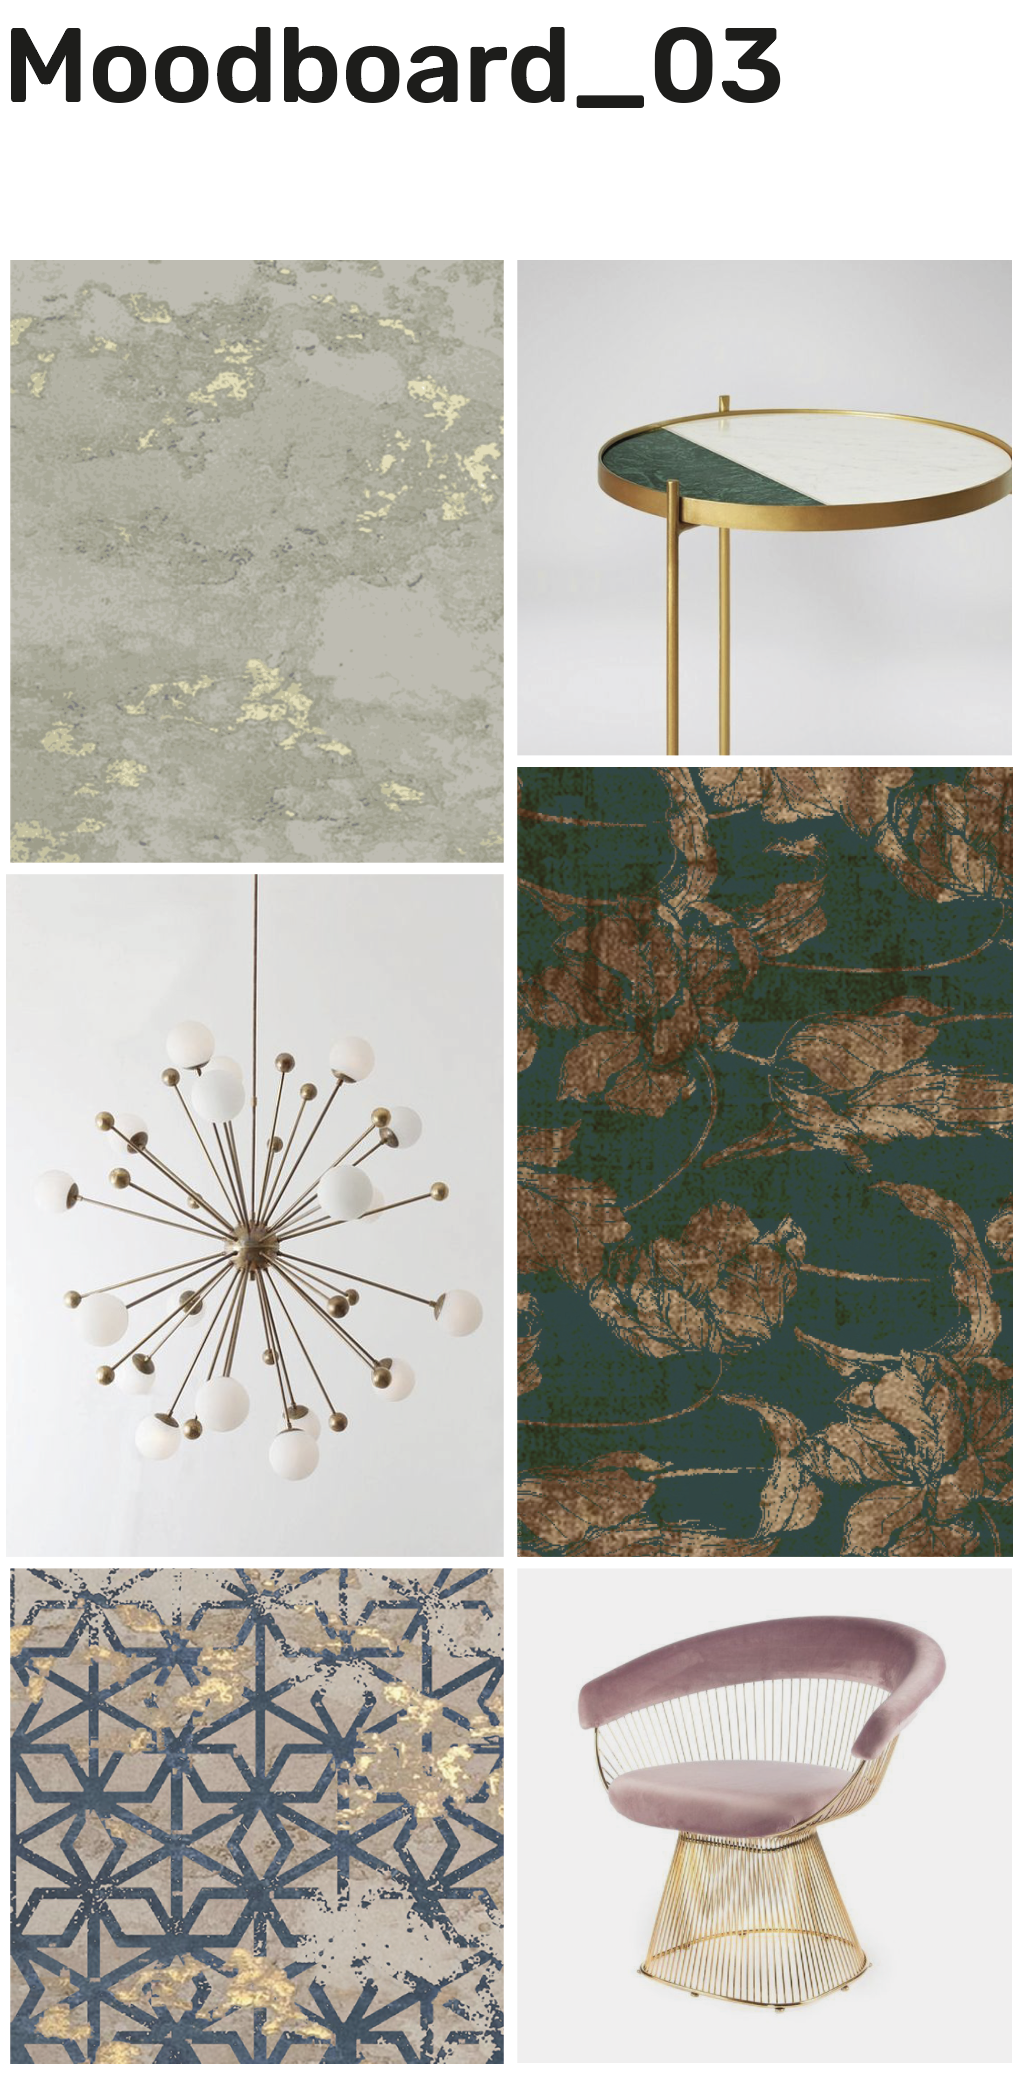 Design:  Baxter - Gubi - Gamfratesi - India Mahdavi - Gallotti&Radice  Graphic:  Luxury Carpet Studio - Moooi Wallcovering - Wallanddeco - Murals Wallpaper - Bradley USA